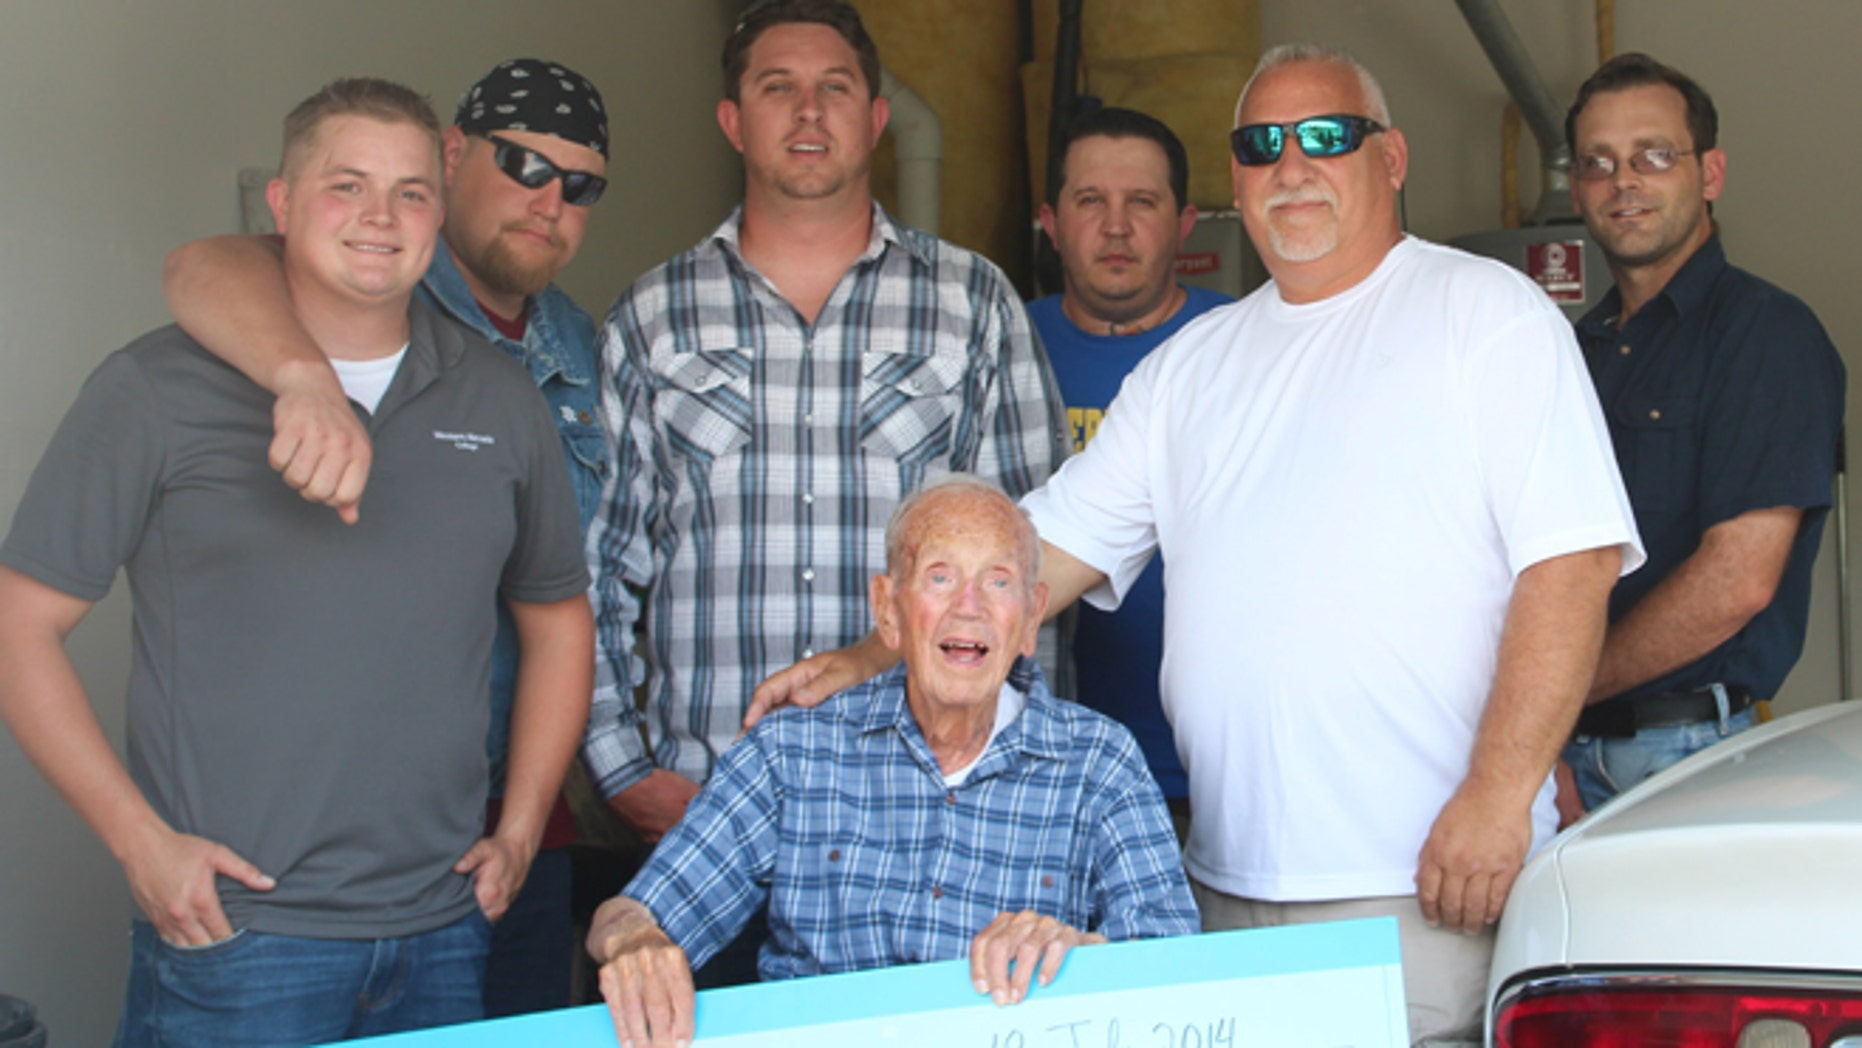 James V. Sorrentino, of Carson City, Nev., received the hefty lump sum in the form of an oversized check from members of Western Nevada College's Veterans Resource Center on Friday, nearly two months after two men forced their way into his home looking for a safe on May 25. (Courtesy: Western Nevada College Veterans Resource Center)